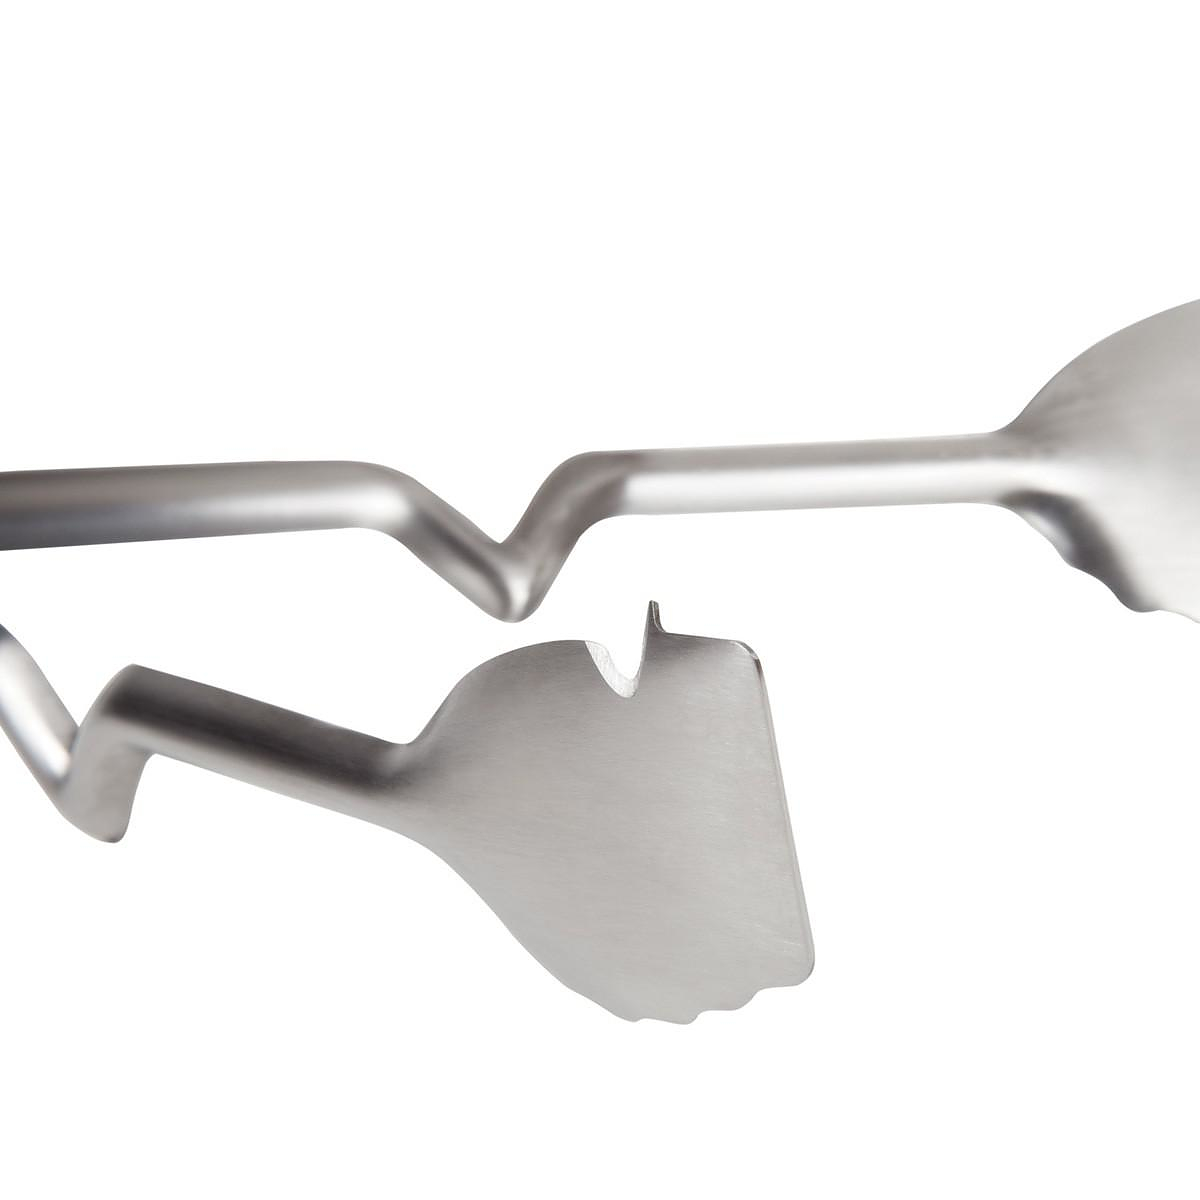 Clongs, innovative kitchen tongs by Dreamfarm.